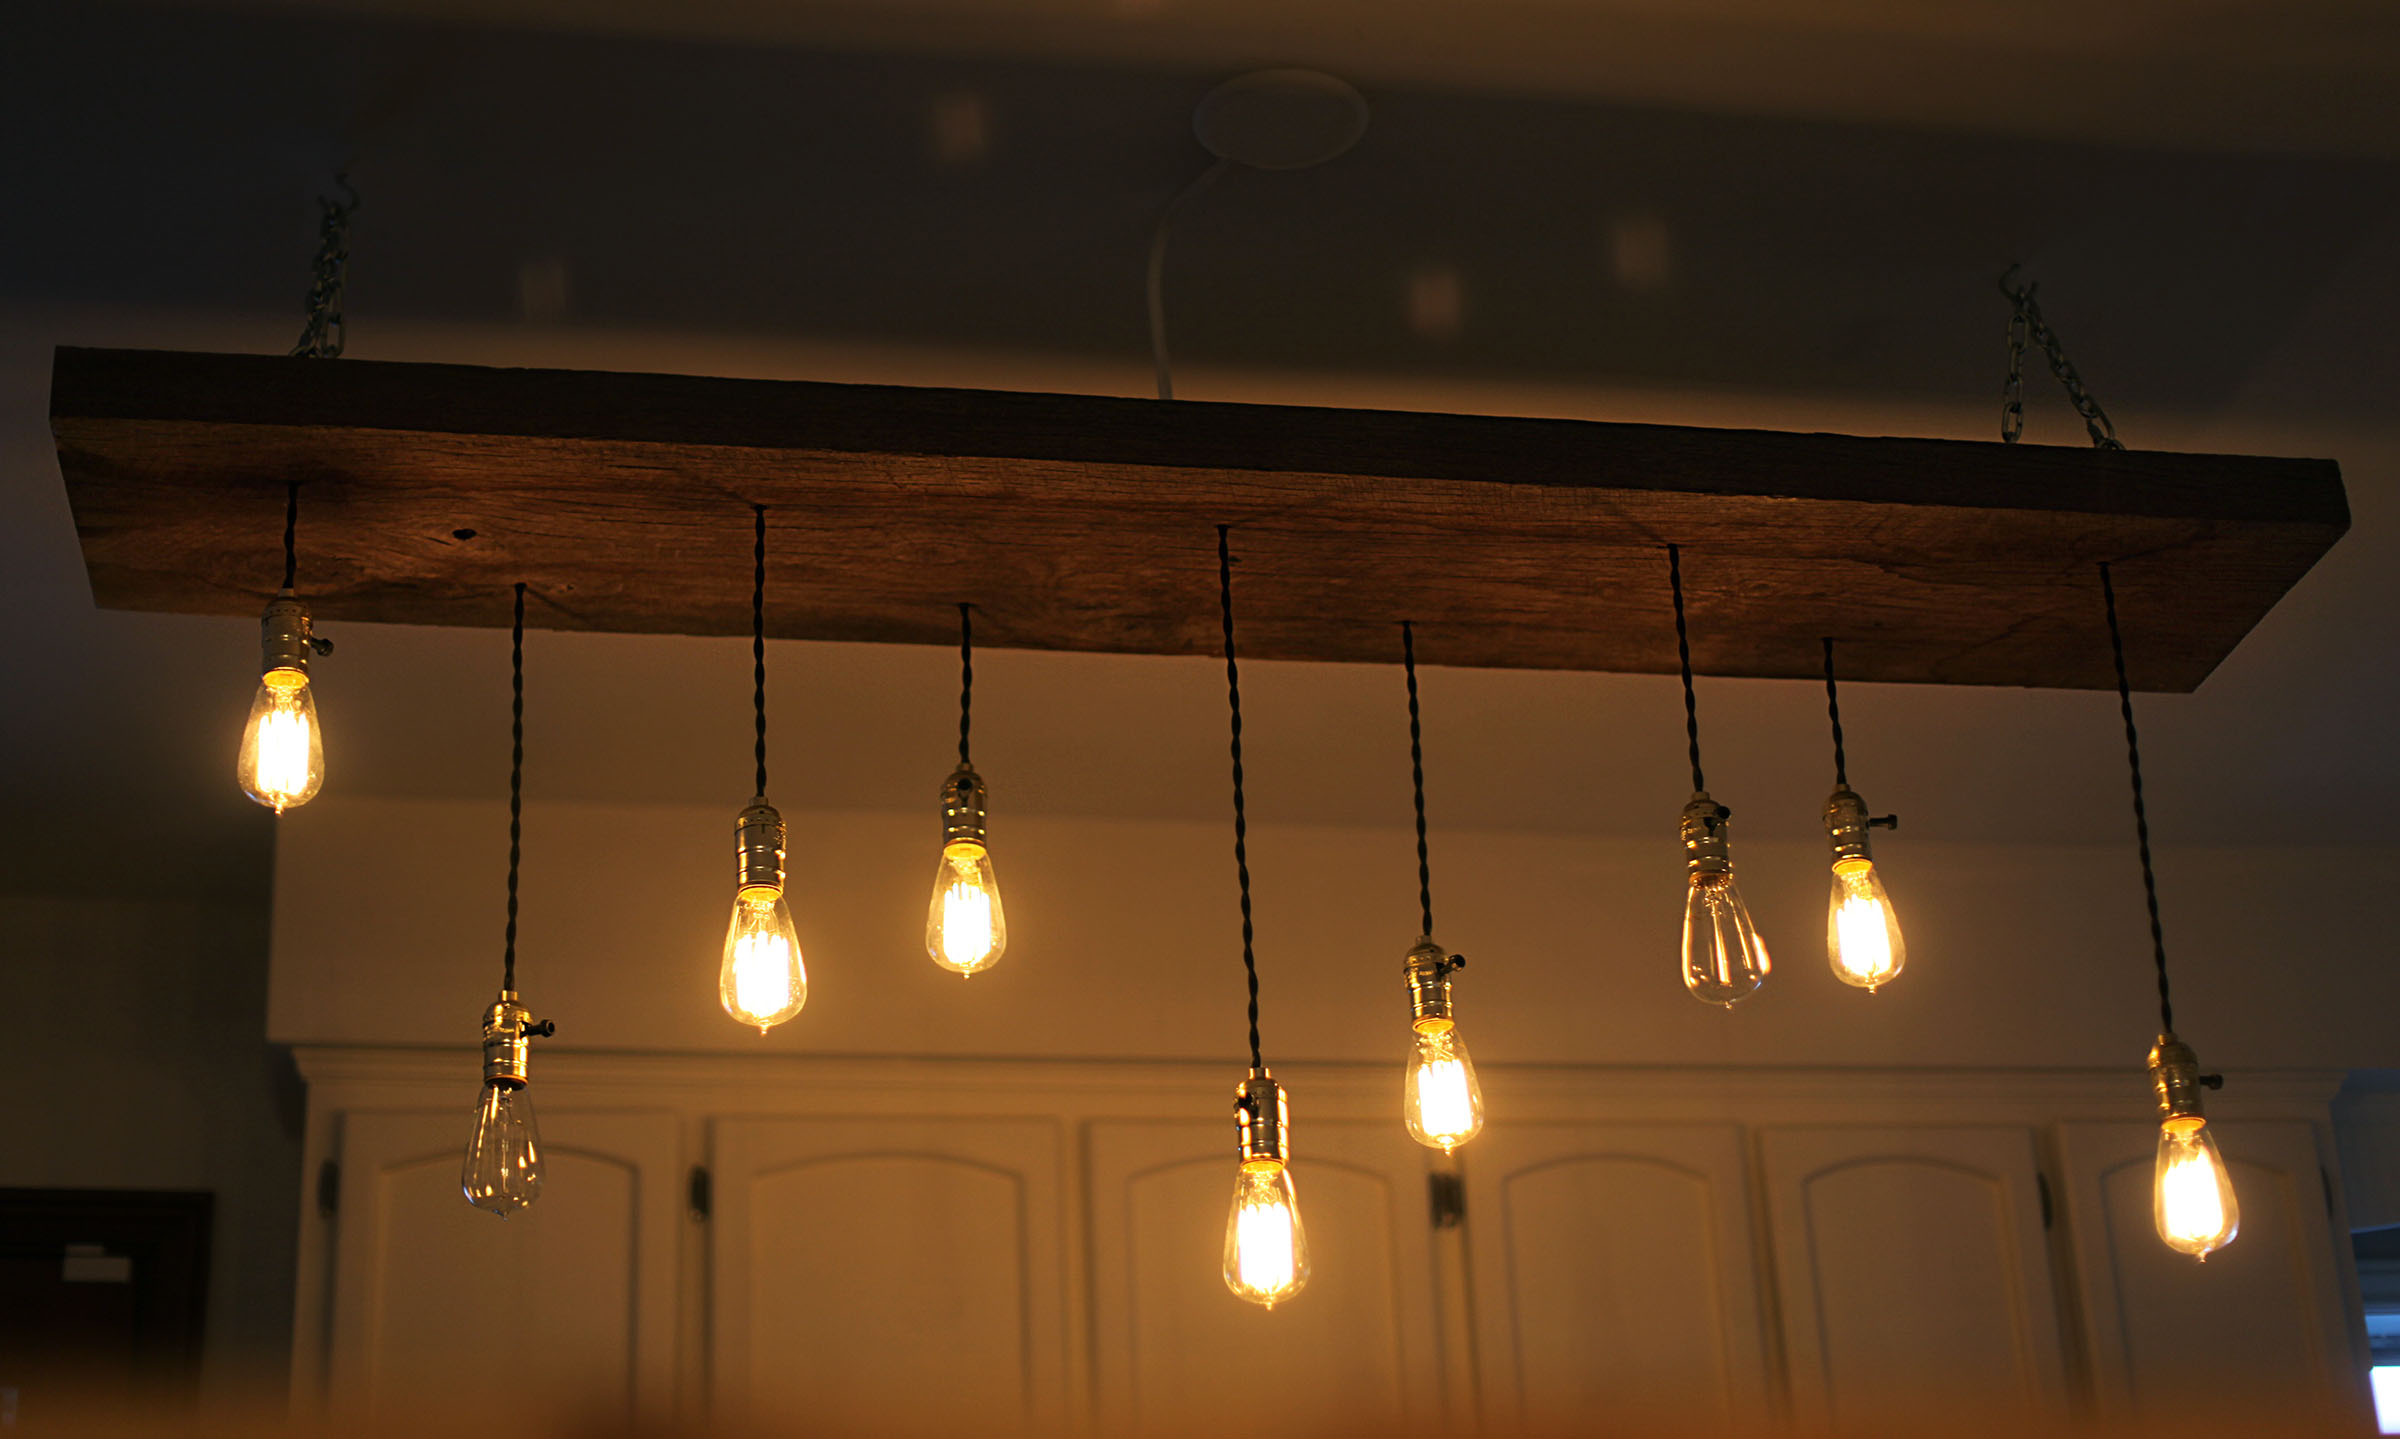 Diy reclaimed lumber hanging edison bulb chandelier unmaintained placing junction boxes wiring lights aloadofball